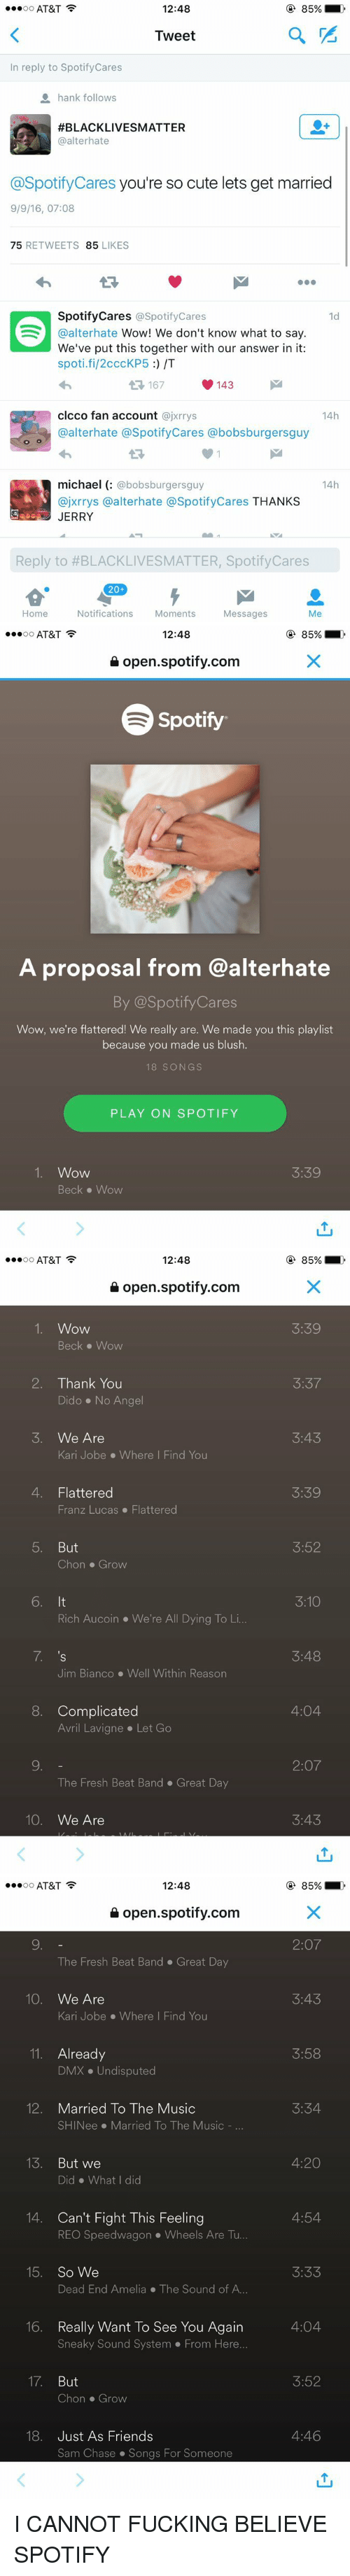 4:20, Cute, and Dmx: 12:48  AT&T  OO  a  Tweet  n reply to Spotify Cares  hank follows  AFBLACKLIVESMATTER  @alter hate  @Spotify Cares you're so cute lets get married  9/9/16, 07:08  75  RETWEETS 85  LIKES  Spotify Cares @Spotify Cares  1d  @alterhate  Wow! We don't know what to say  We've put this together with our answer in it:  spoti.fi/2cccKP5 /T  167  143  clcco fan account  @jxrrys  14h  @alter hate @Spotify Cares abobsburgersguy  michael  bobsburgersguy  14h  ajxrrys a alterhate @SpotifyCares  THANKS  JERRY  Reply to #BLACKLIVESMATTER, SpotifyCares  20  Home  Notifications  Moments  Messages  Me   12:48  AT&T  OO  open spotify.com  Spotify  A proposal from @alterhate  By @Spotify Cares  Wow, we're flattered! We really are. We made you this playlist  because you made us blush.  18 SONGS  PLAY ON SPOTIFY  1. Wow  3:39  Beck Wow   12:48  AT&T  OO  open spotify.com  1. Wow  Beck Wow  2. Thank You  Dido No Angel  5. We Are  Kari Jobe Where I Find You  4. Flattered  Franz Lucas Flattered  5. But  Chon Grow  6. It  Rich Aucoin V We're All Dying To Li.  7, 's  Jim Bianco Well within Reason  8. Complicated  Avril Lavigne Let Go  The Fresh Beat Band Great Day  10  We Are  85%  3:39  3:37  3:43  3:39  3:52  3:10  3:48  4:04  2:07  3:43   12:48  AT&T  OO  open spotify.com  The Fresh Beat Band Great Day  10  We Are  Kari Jobe Where I Find You  11. Already  DMX Undisputed  12  Married To The Music  SHINee Married To The Music  13  But we  Did What did  14. Can't Fight This Feeling  REO Speedwagon Wheels Are Tu...  15  So We  Dead End Amelia The Sound of A...  16. Really want To See You Again  Sneaky Sound System From Here...  17  But  Chon Grow  18. Just As Friends  Sam Chase Songs For Someone  2:07  3:43  3:58  3:34  4:20  4:54  3:33  4:04  3:52  4:46 I CANNOT FUCKING BELIEVE SPOTIFY